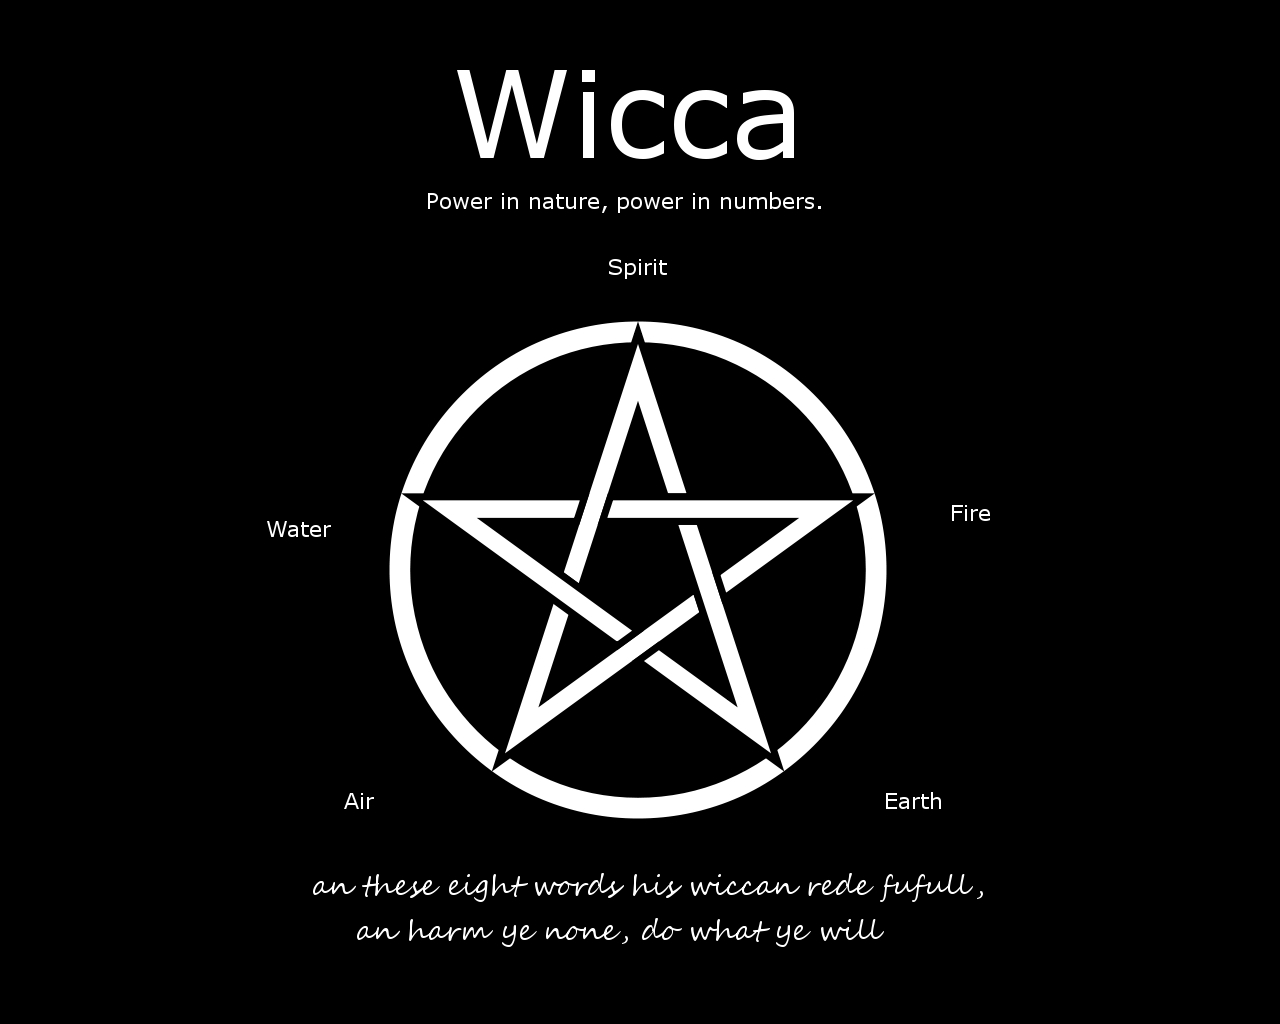 the association of wiccan religion with satanism